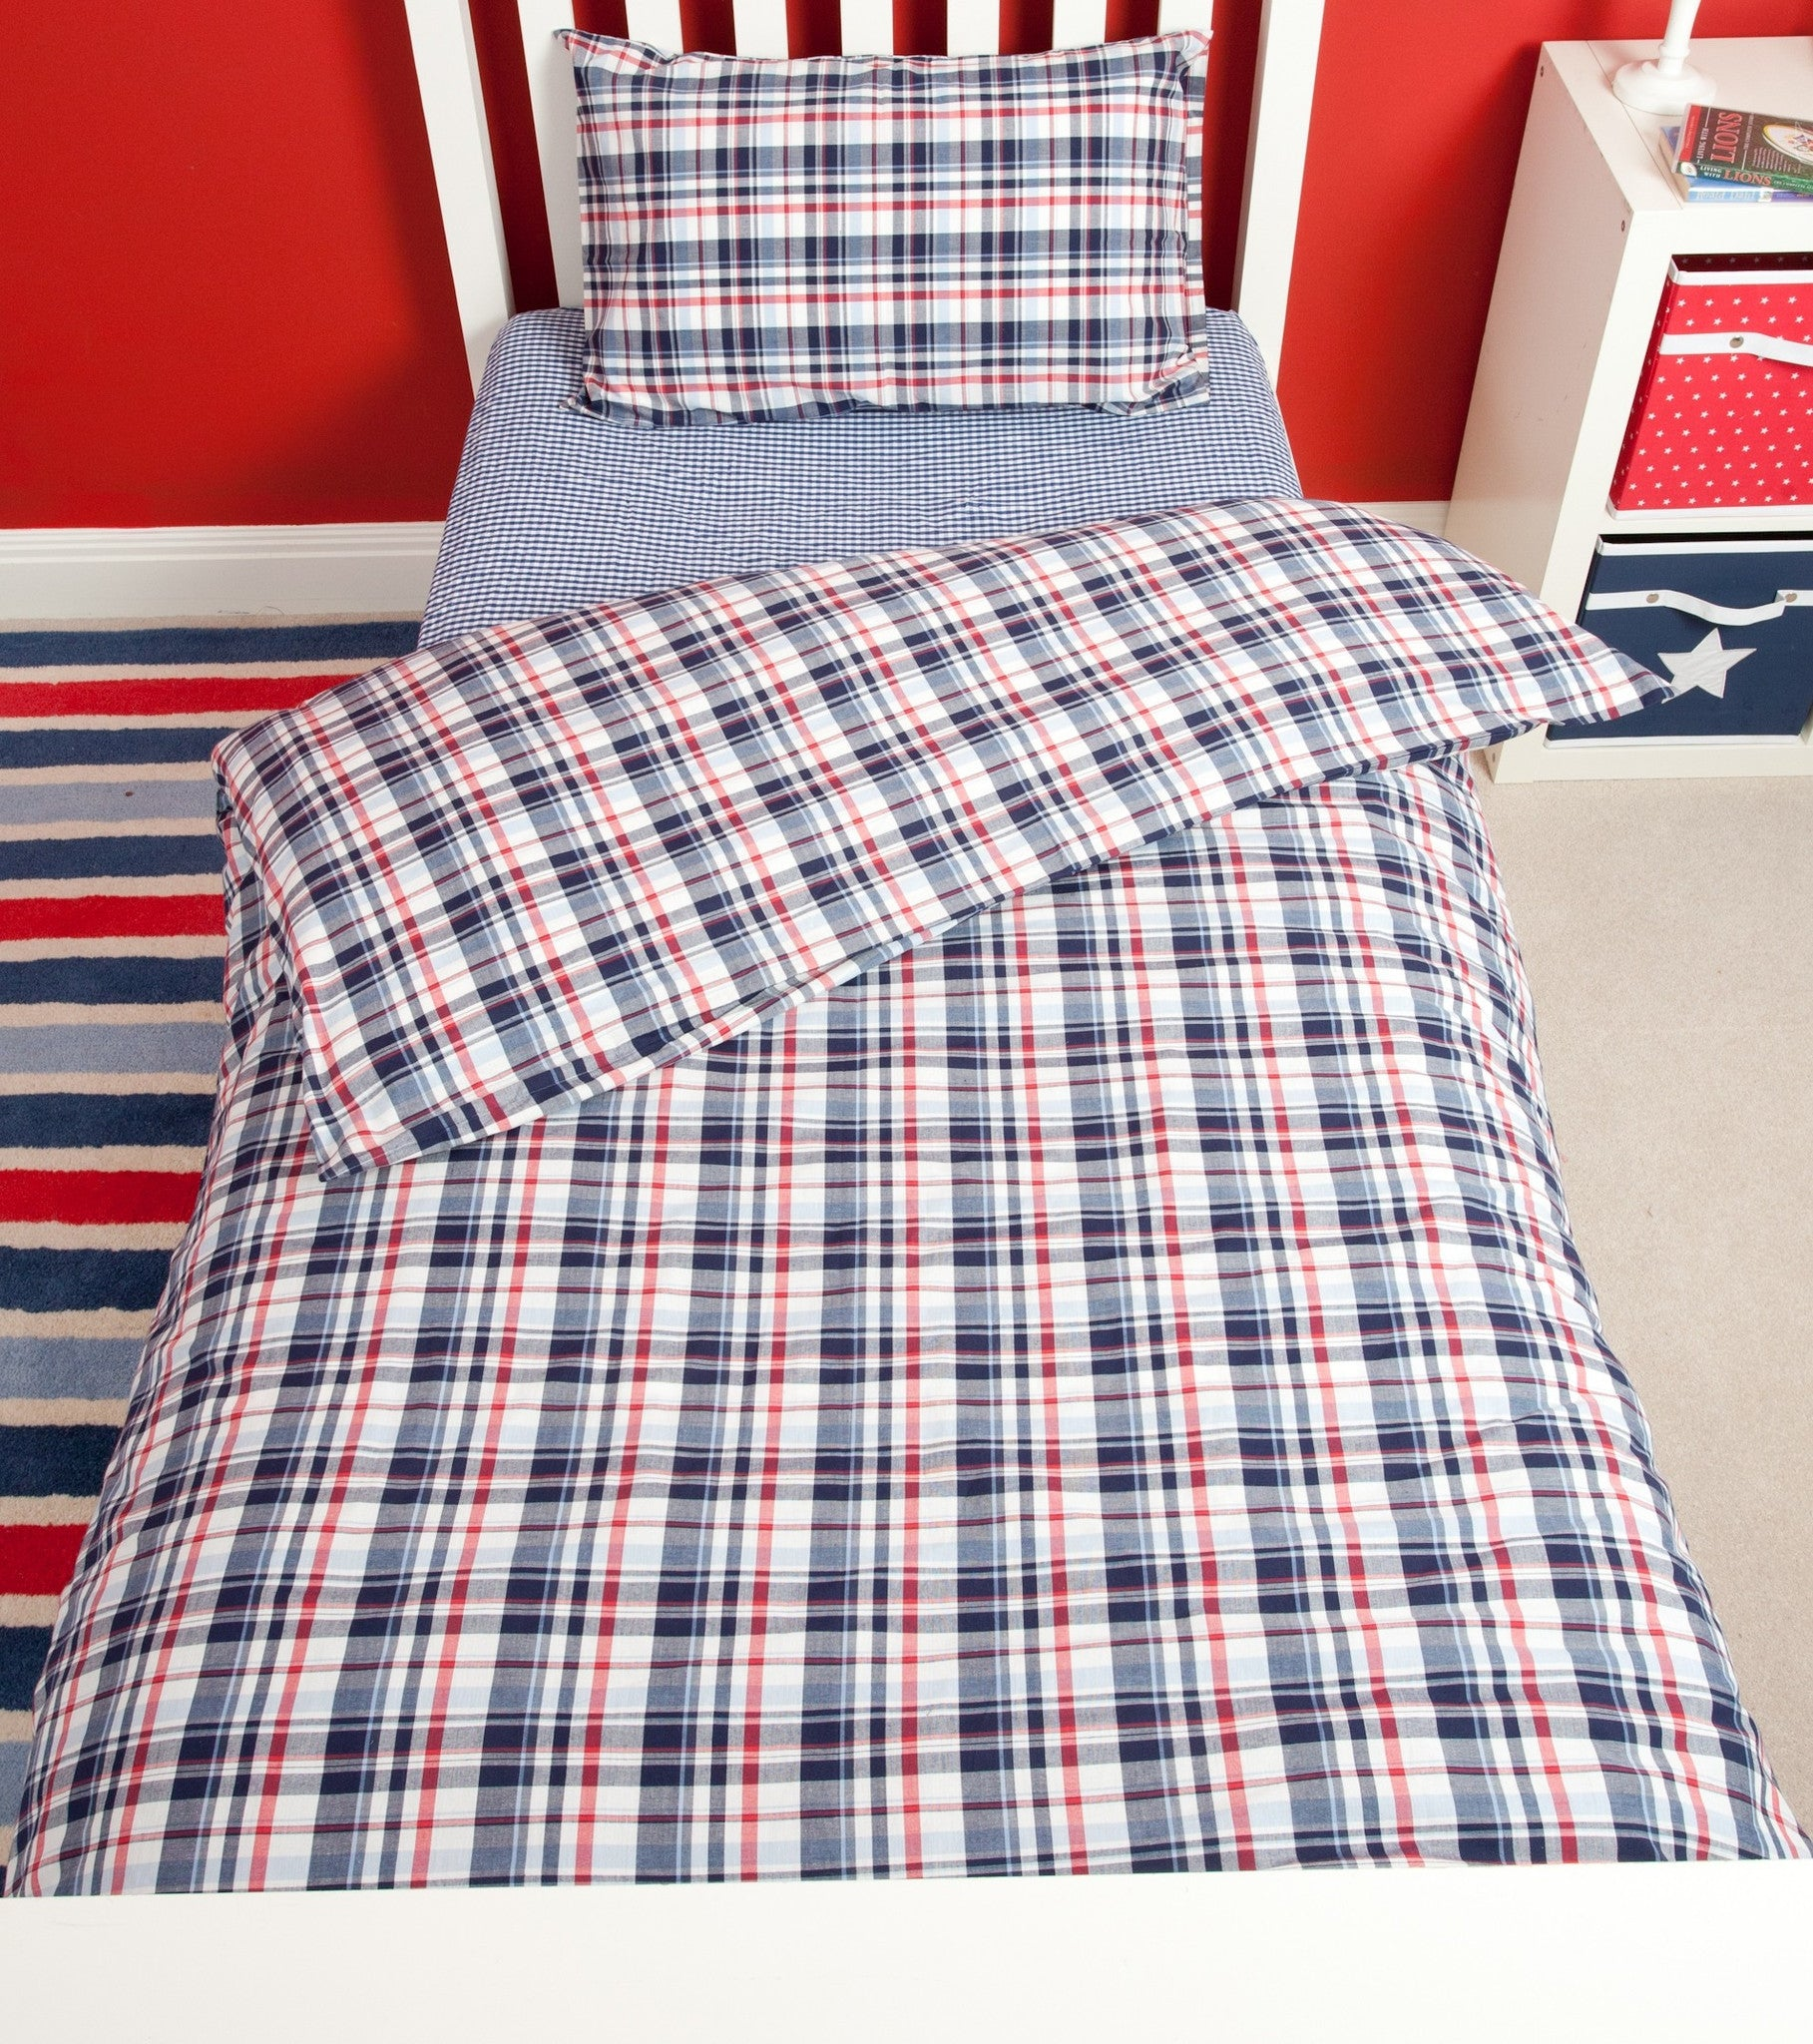 dorma check sets bed linen balmoral cover duvet pin red dunelm set